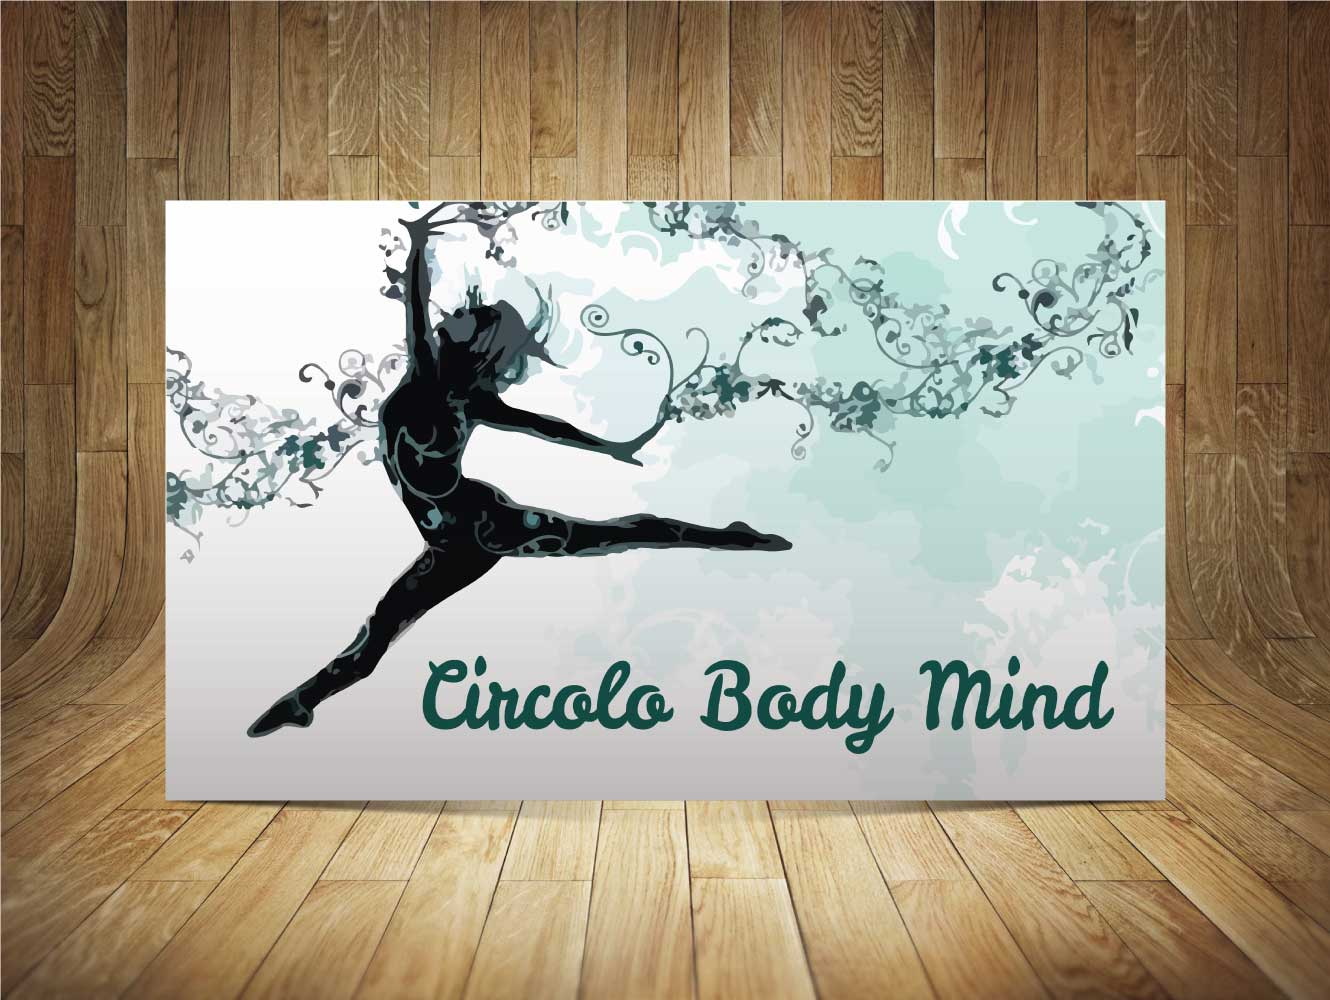 cartello-cicolo-body-mind